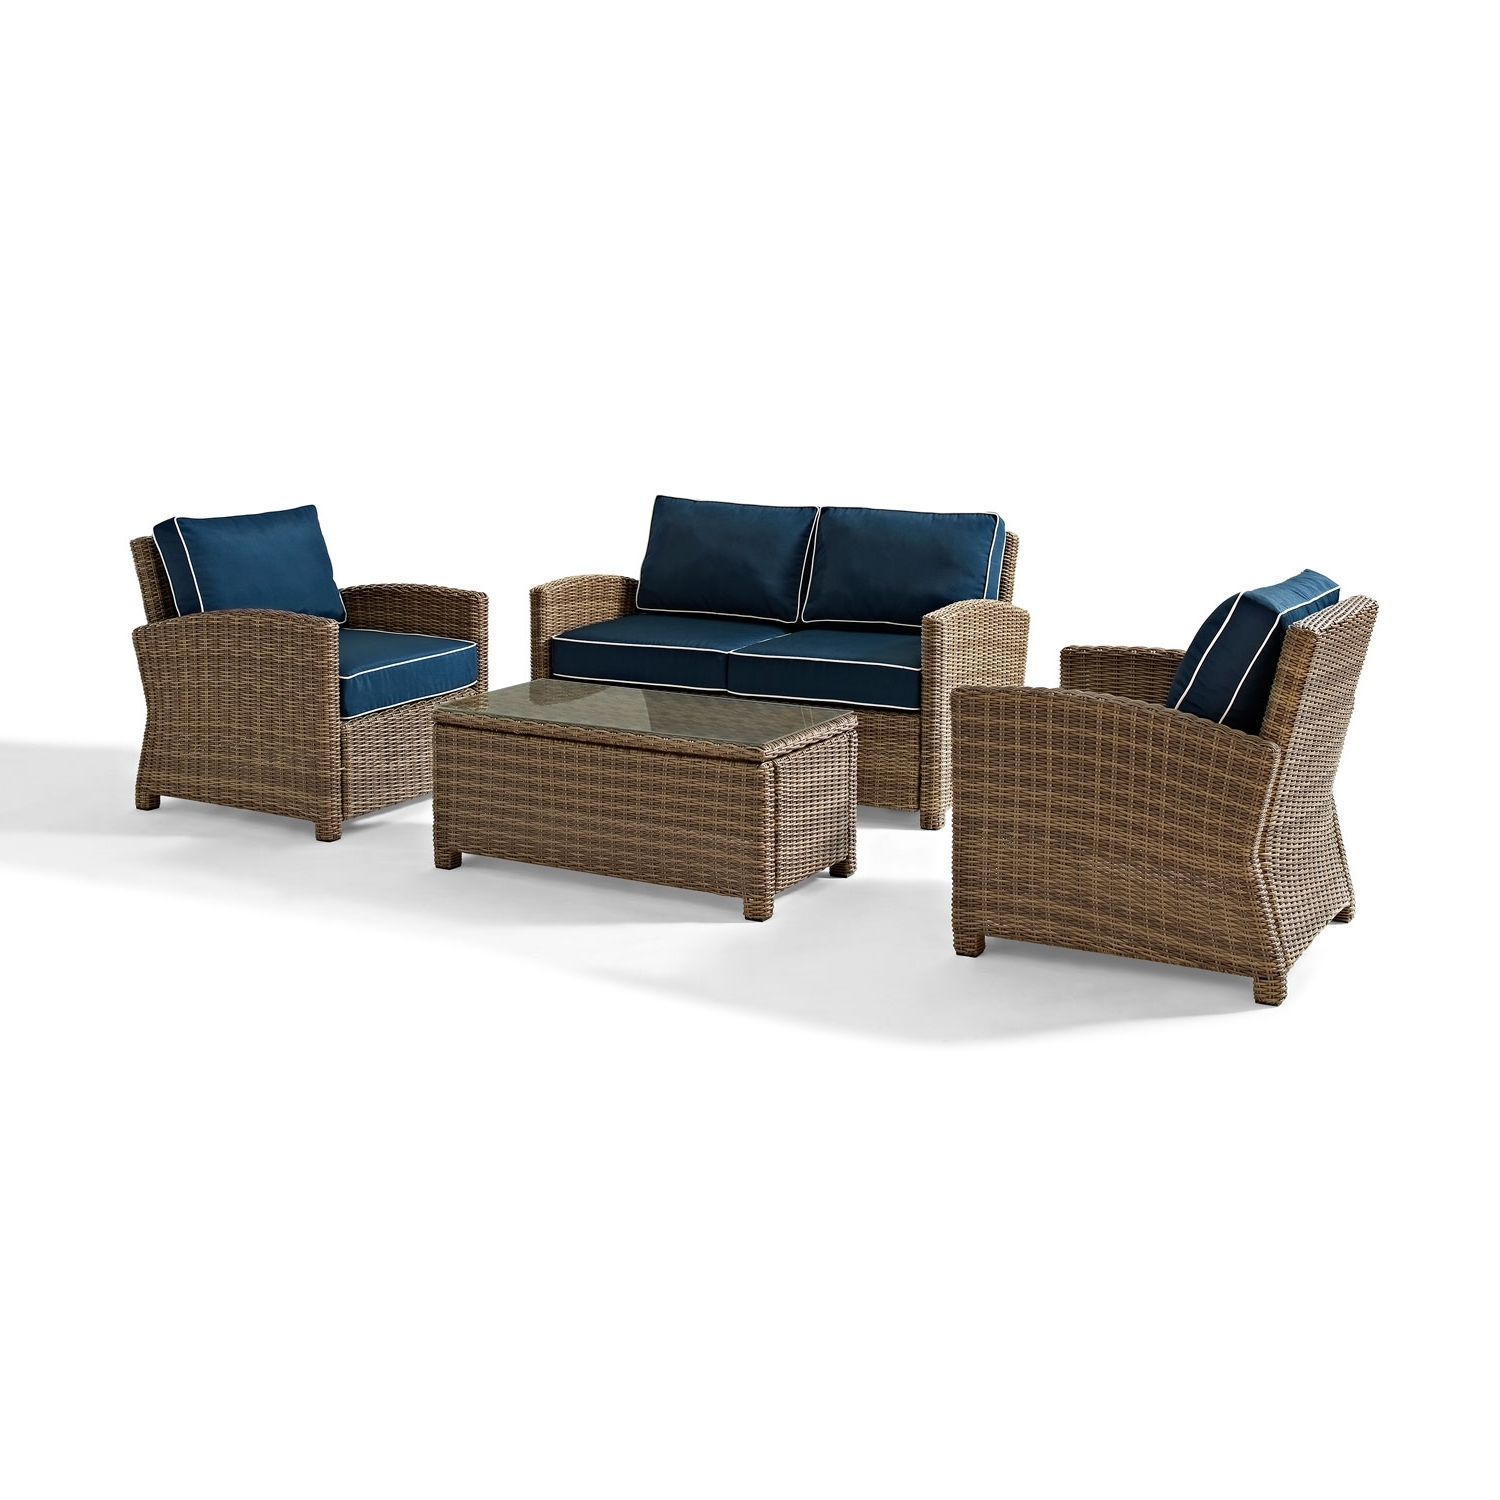 Most Popular Crosley Furniture Bradenton 4 Piece Outdoor Wicker Seating Set With For Wicker 4Pc Patio Conversation Sets With Navy Cushions (View 4 of 15)